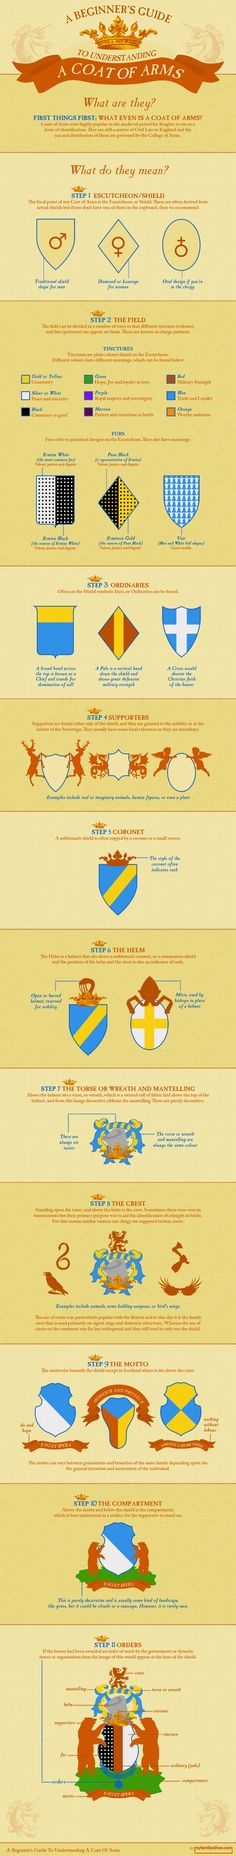 How to read a coat of arms - Imgur